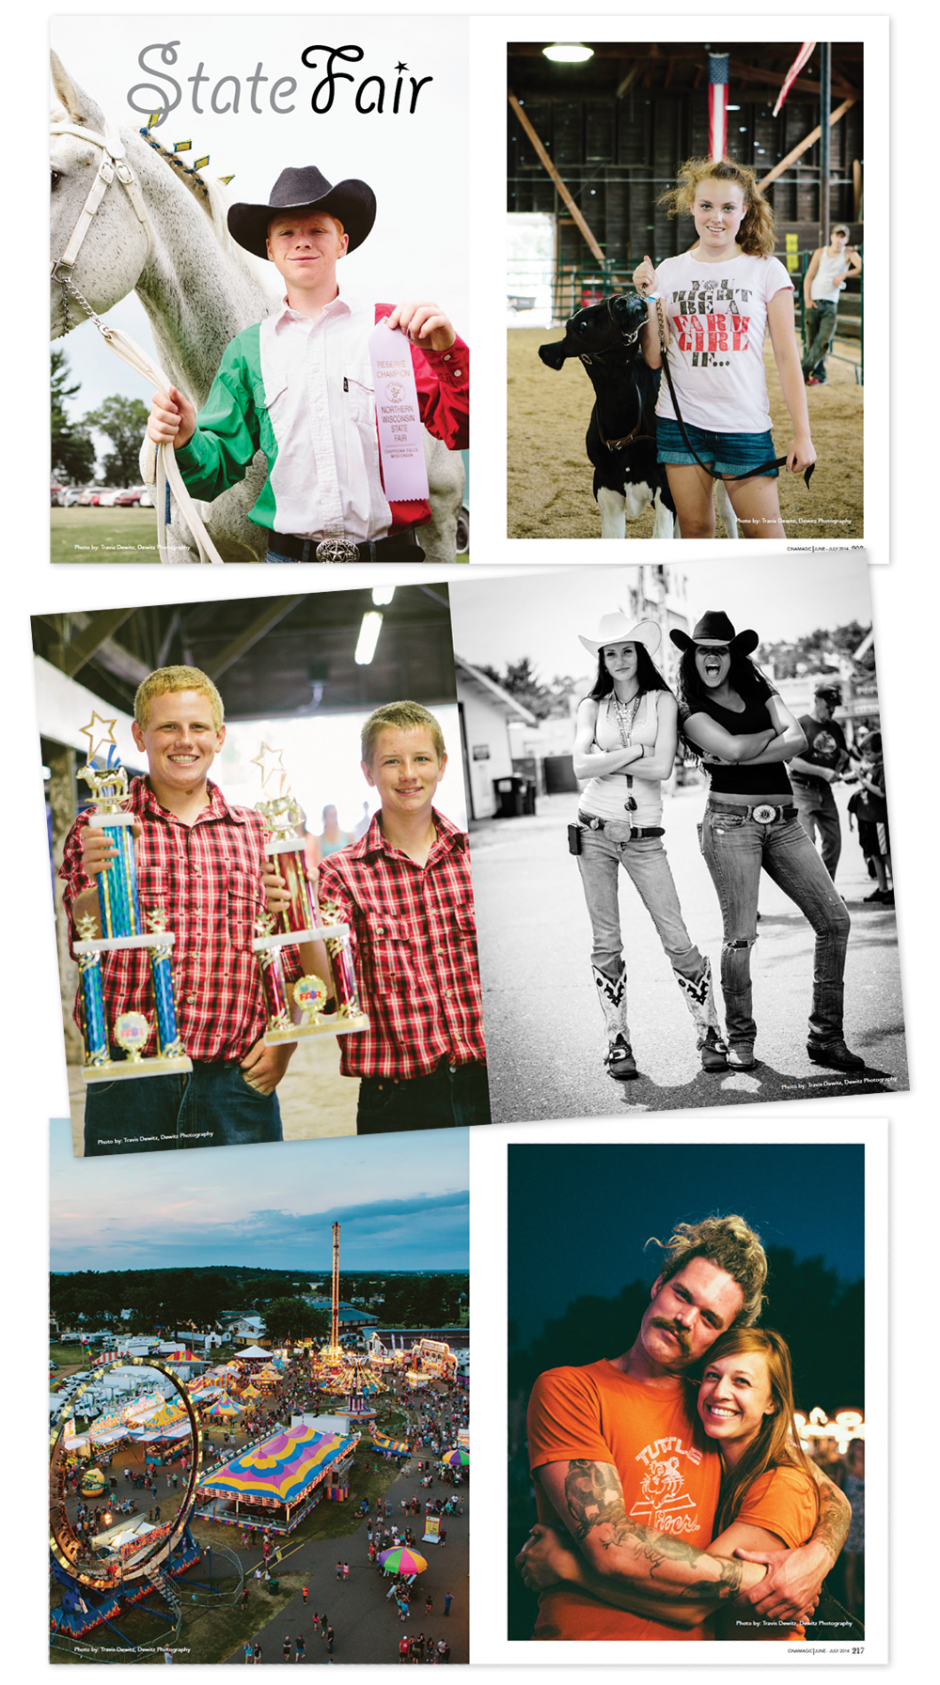 Cinamagic Magazine State Fair Photo Spread